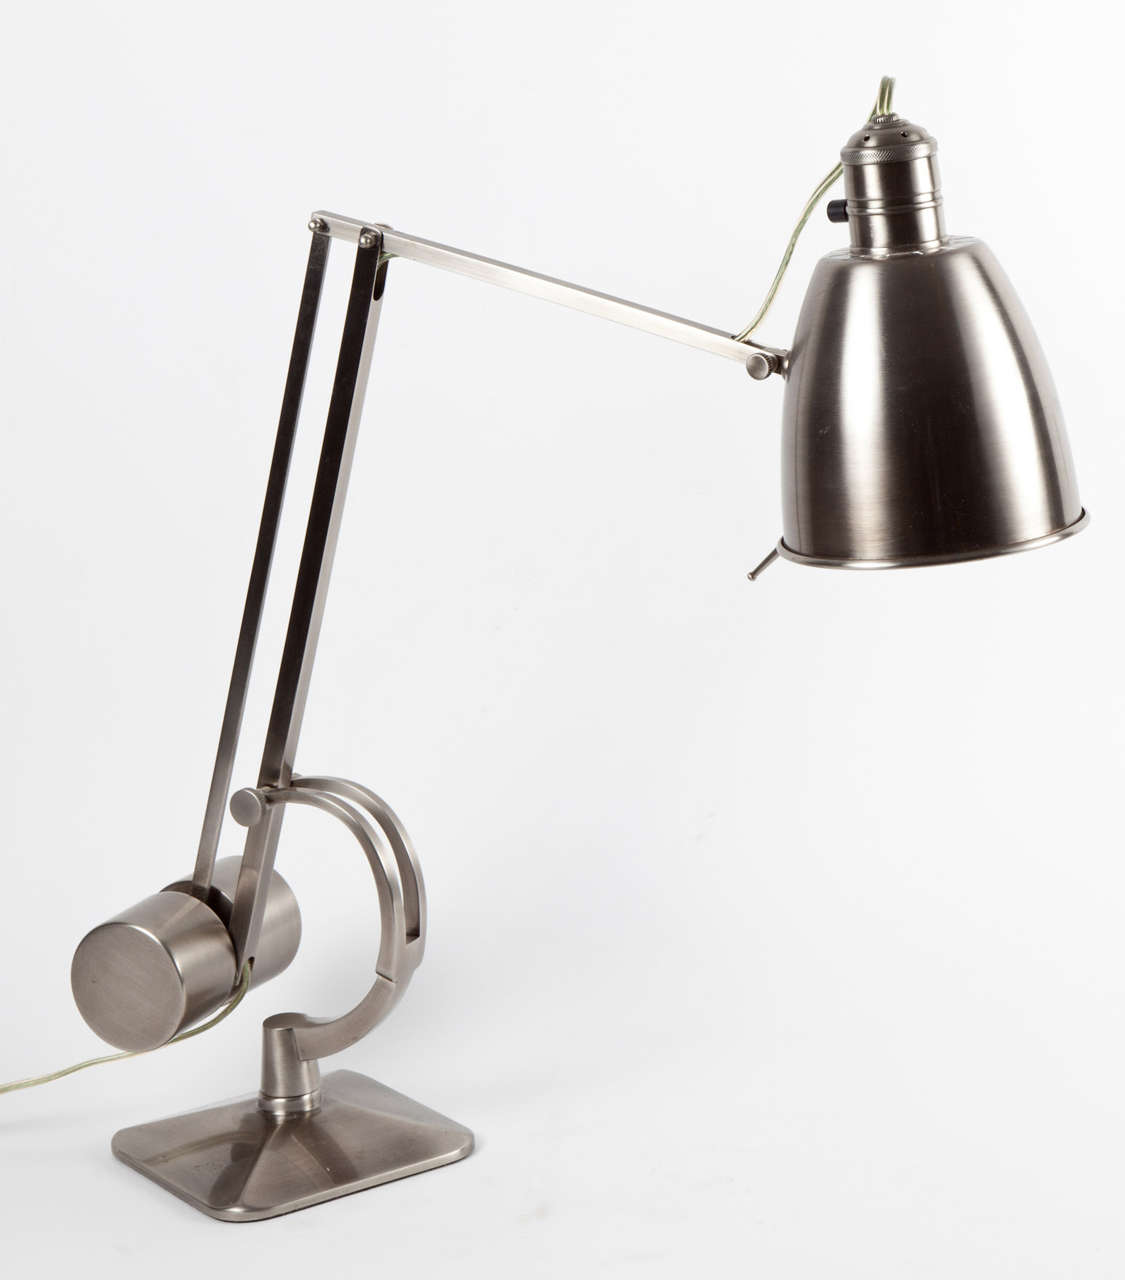 Vintage Style Counterweight Desk Lamp image 2